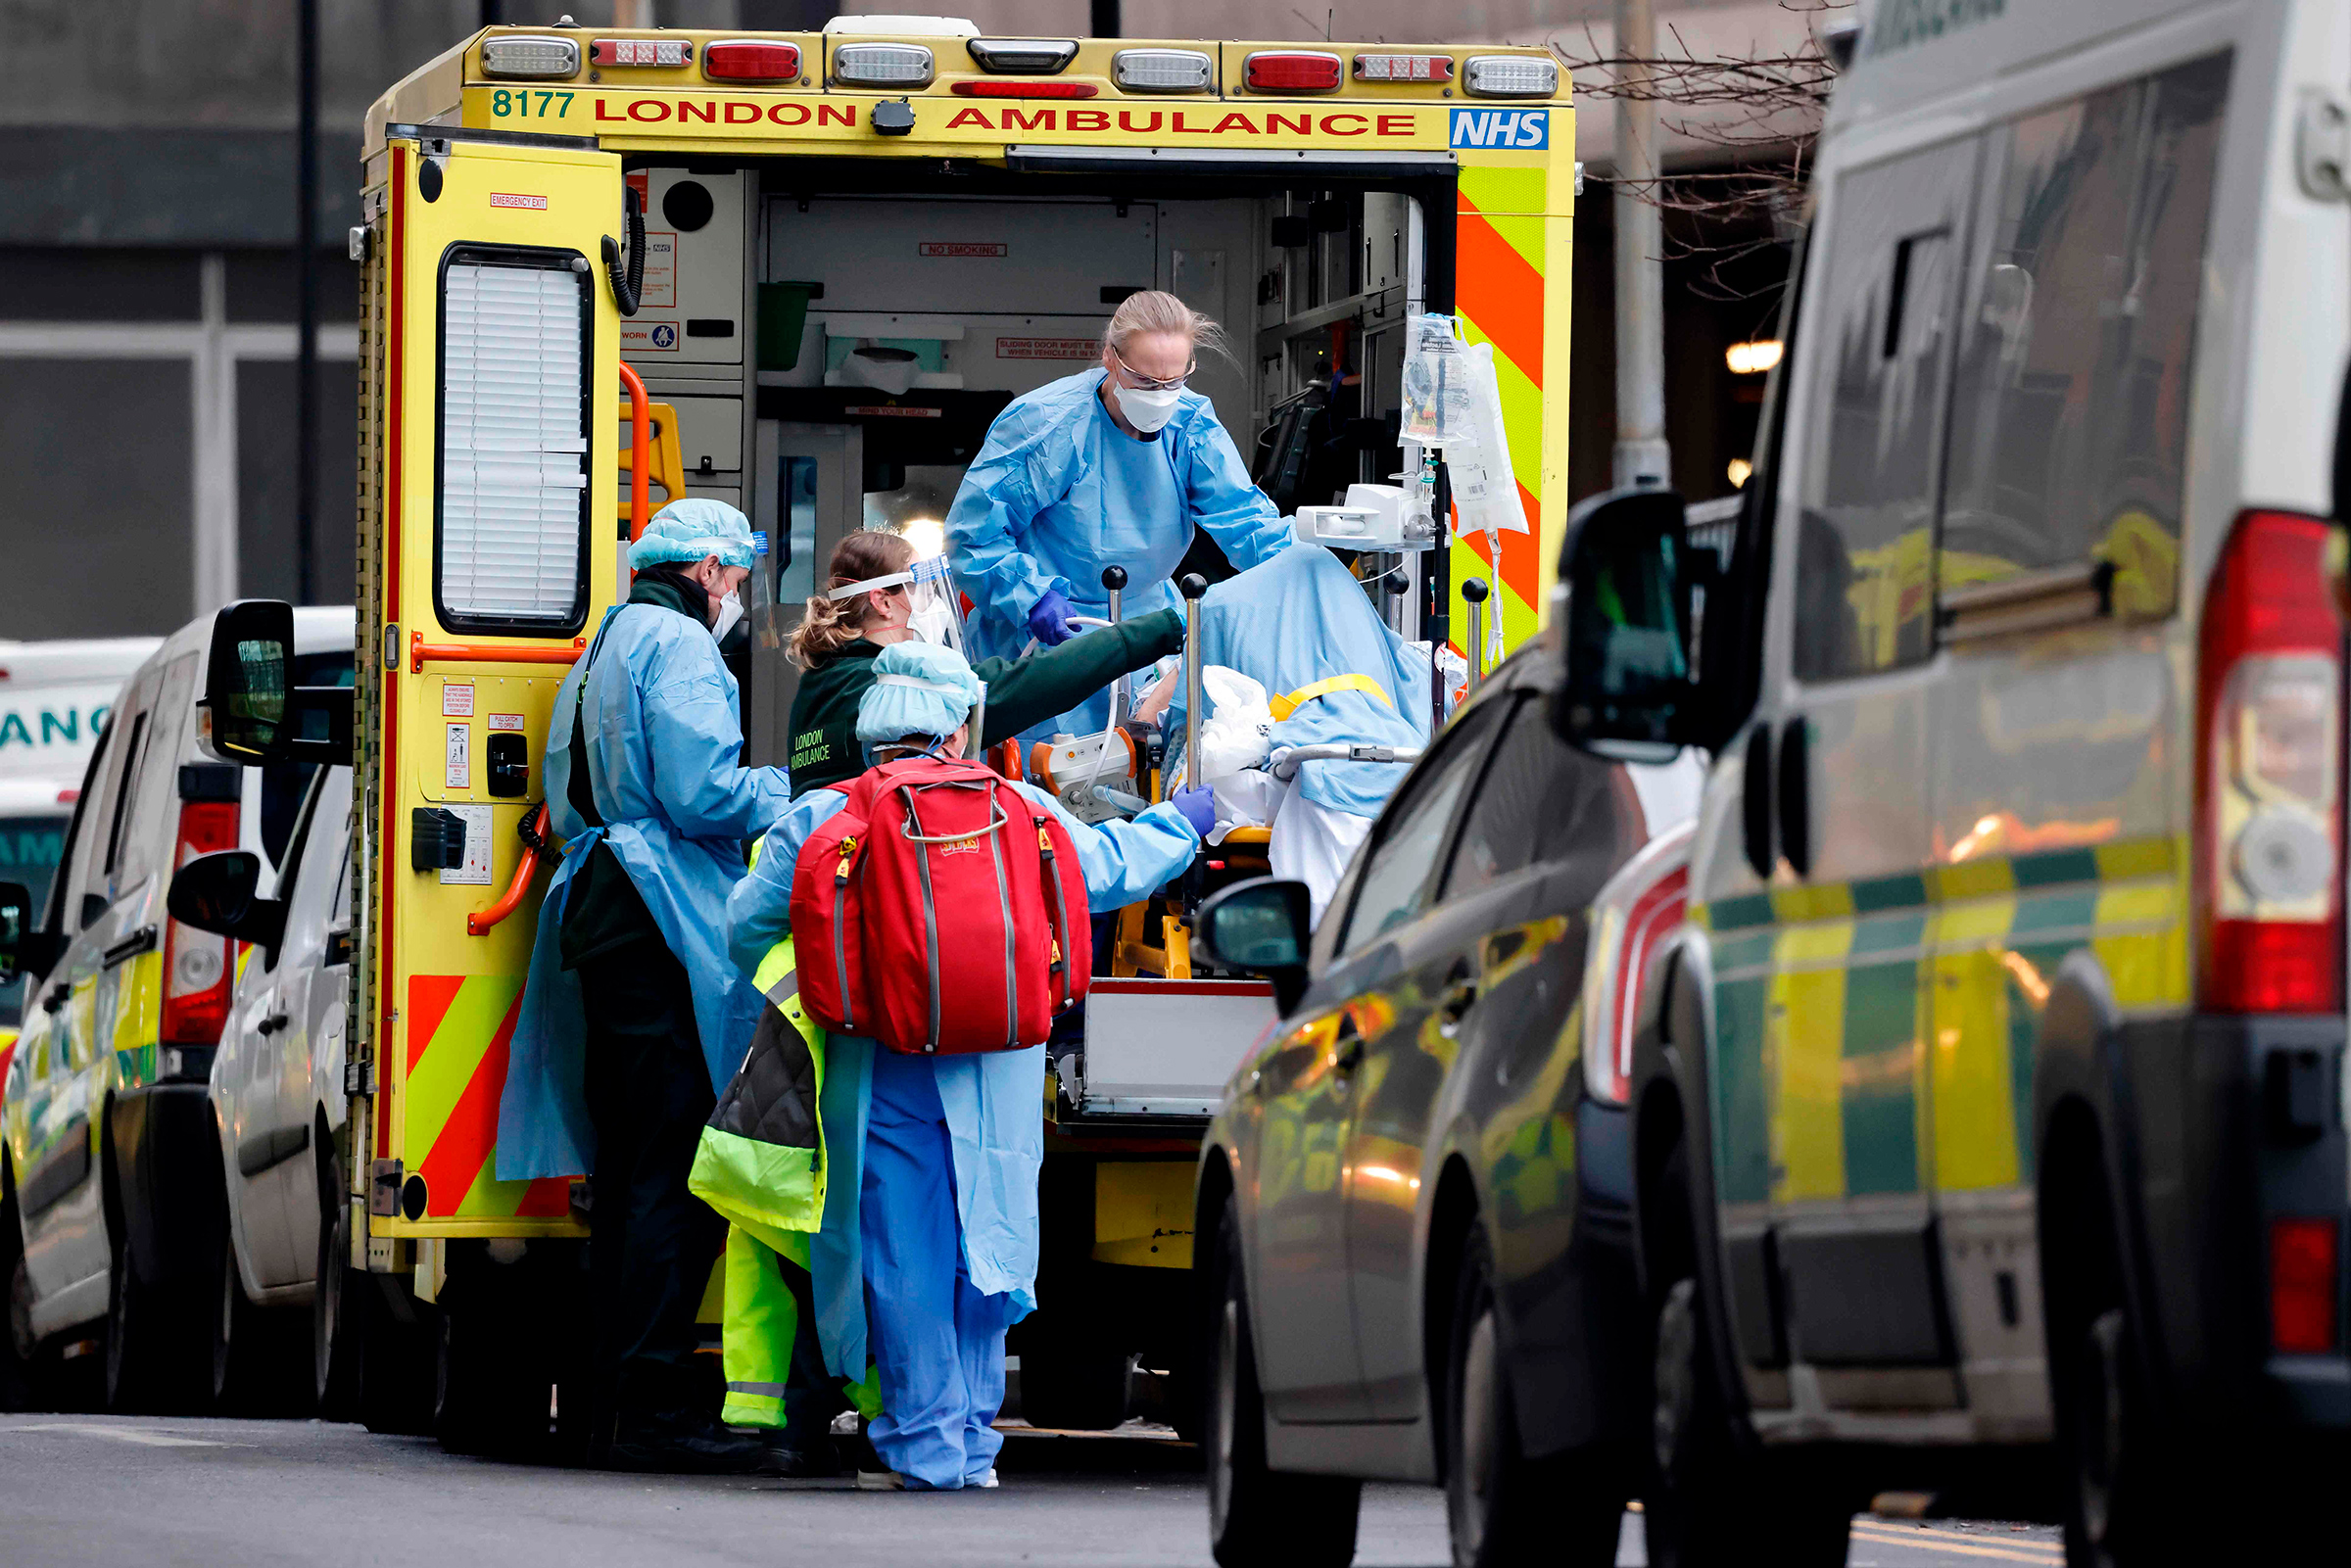 A patient is taken from an ambulance by staff wearing PPE equipment at the Royal Free Hospital, London, on Jan. 11 as surging cases of Covid-19 are placing health services under increasing pressure